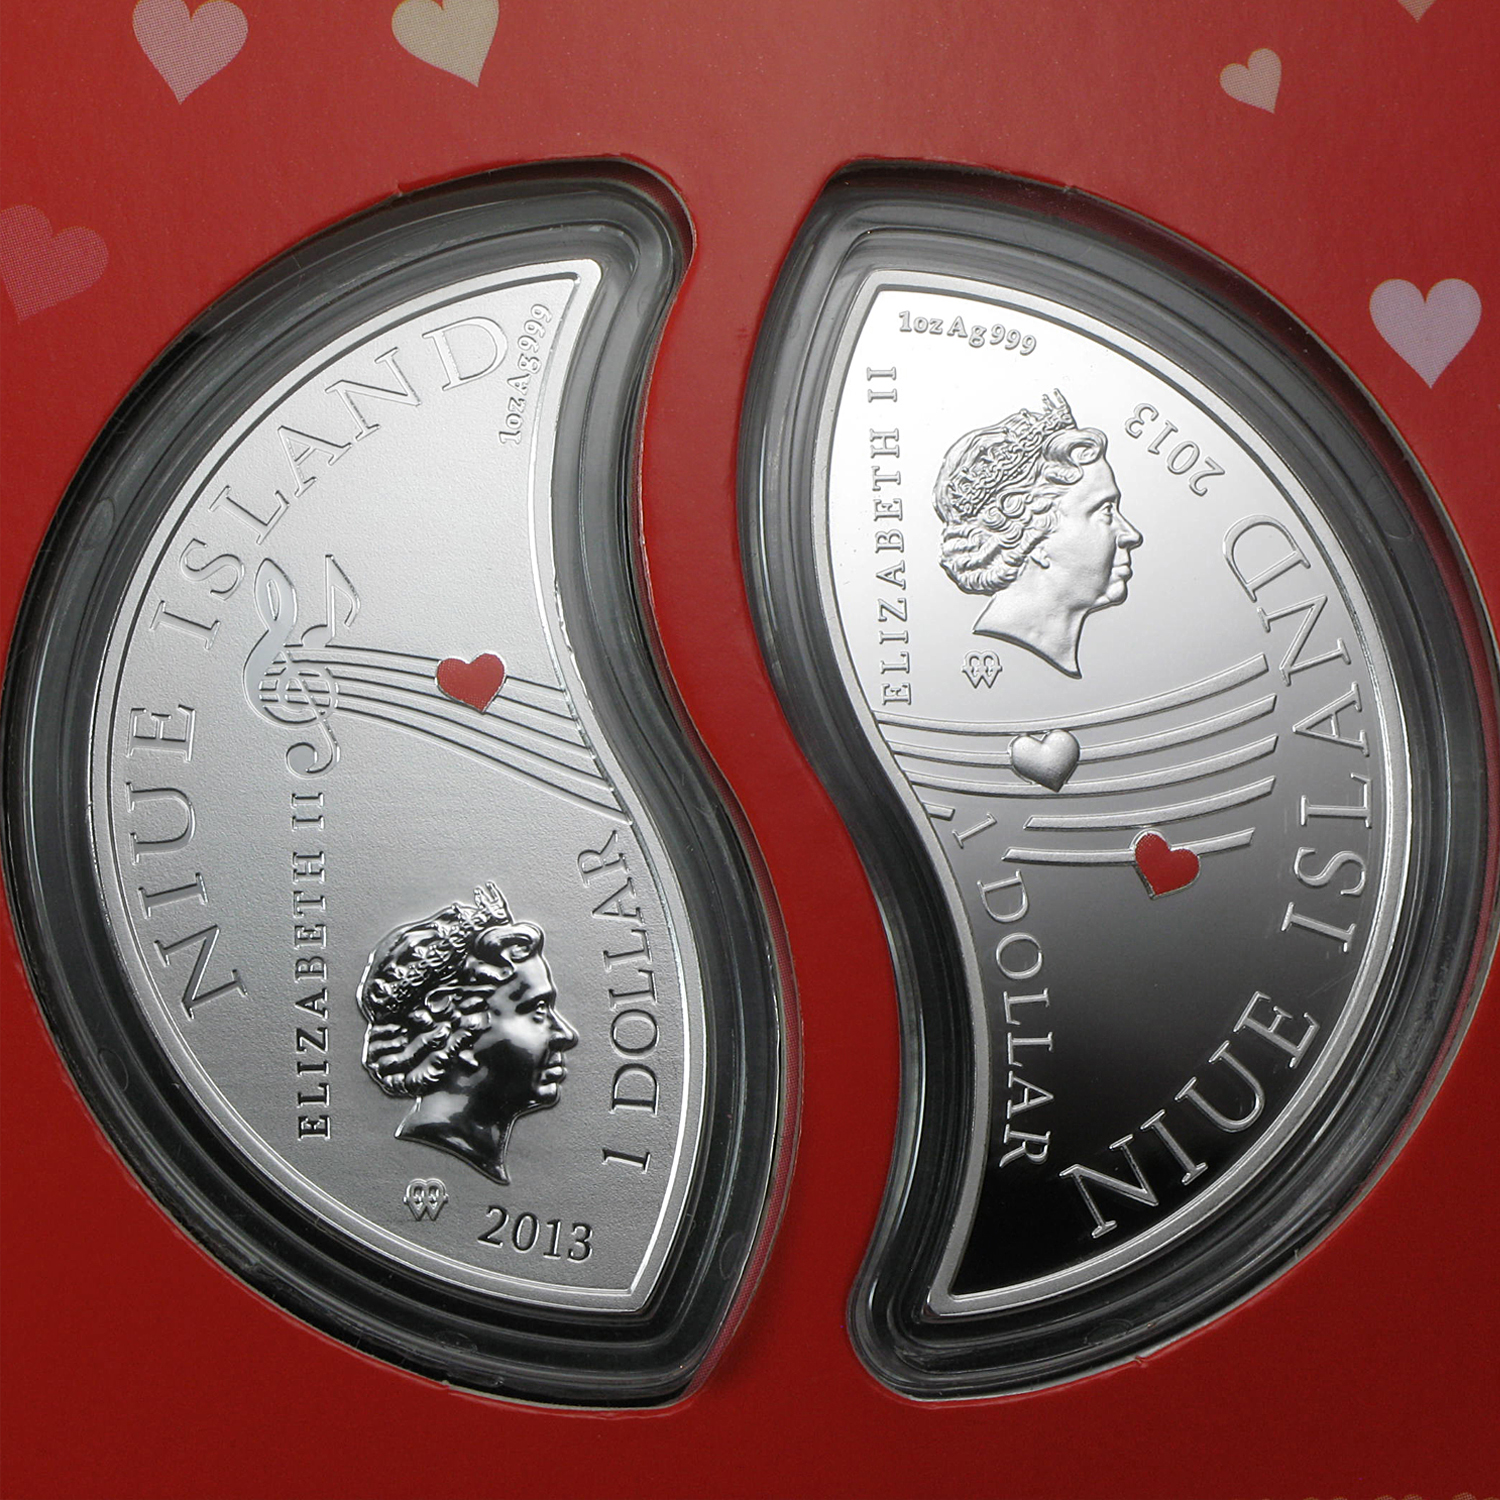 Niue $1 - 2013 2 oz Silver Proof - In Love - Set of 2 Coins